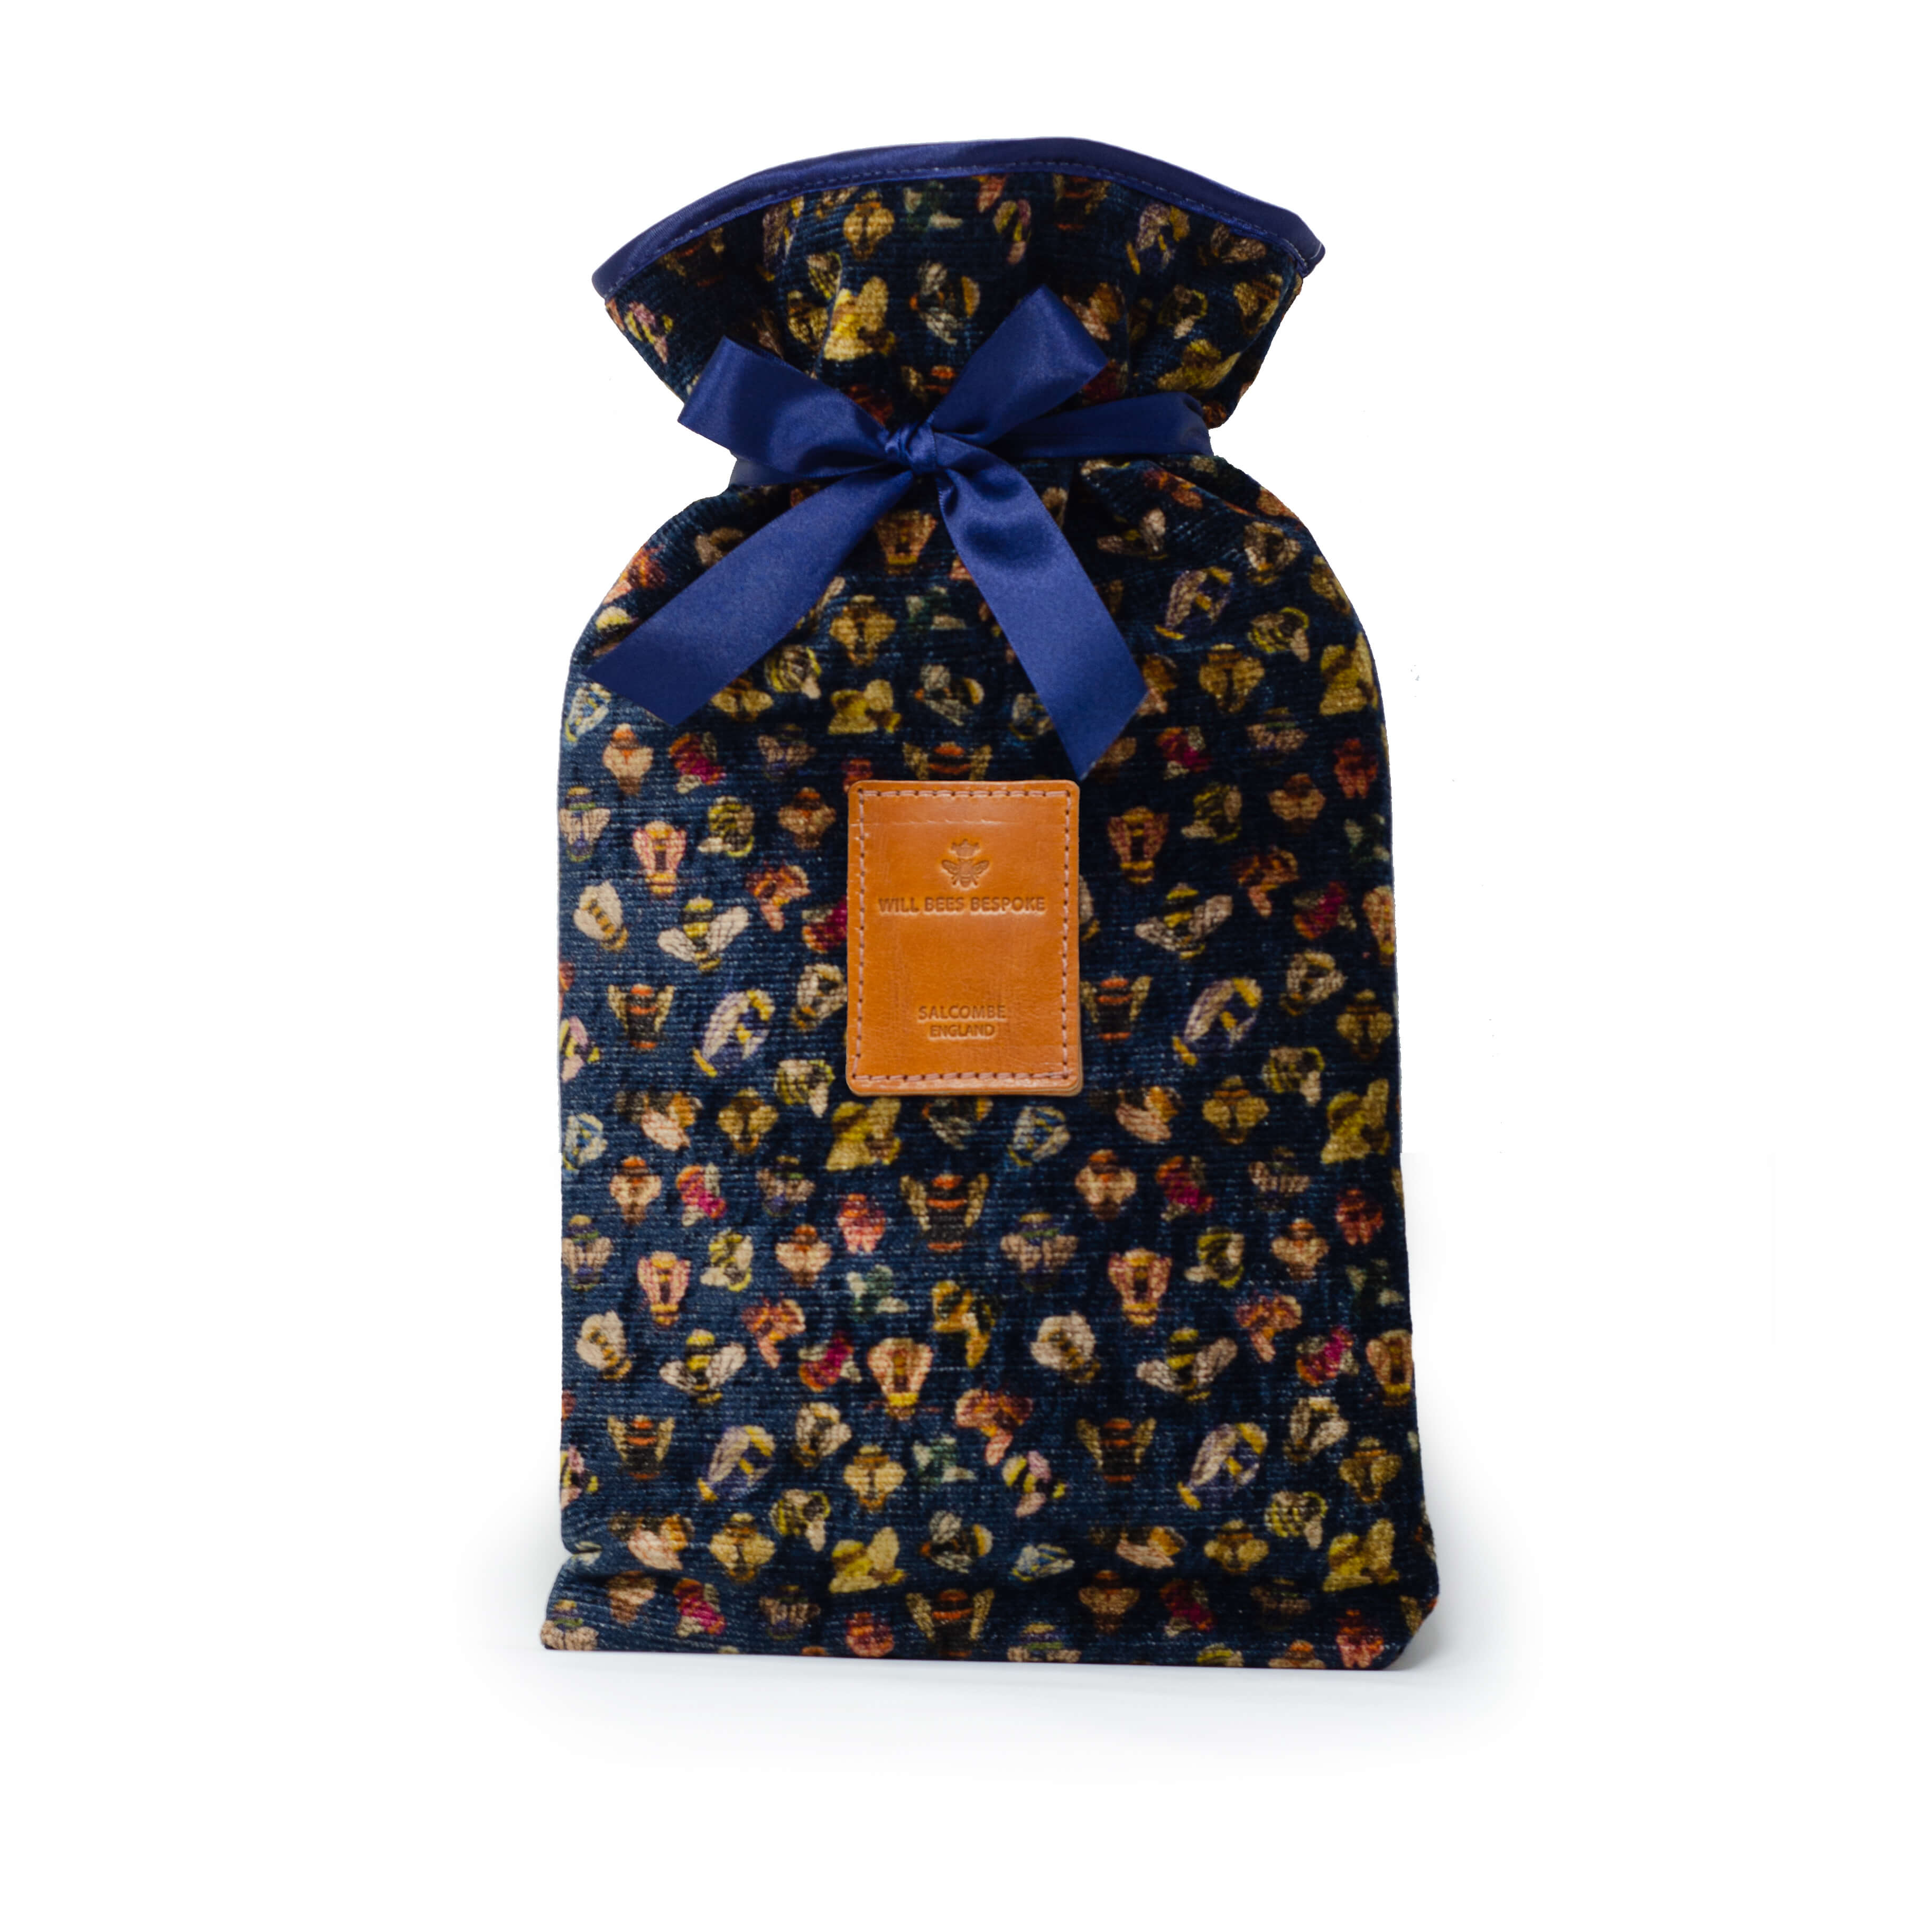 Hot Water Bottle & Cover - Bee party in Midnight sky